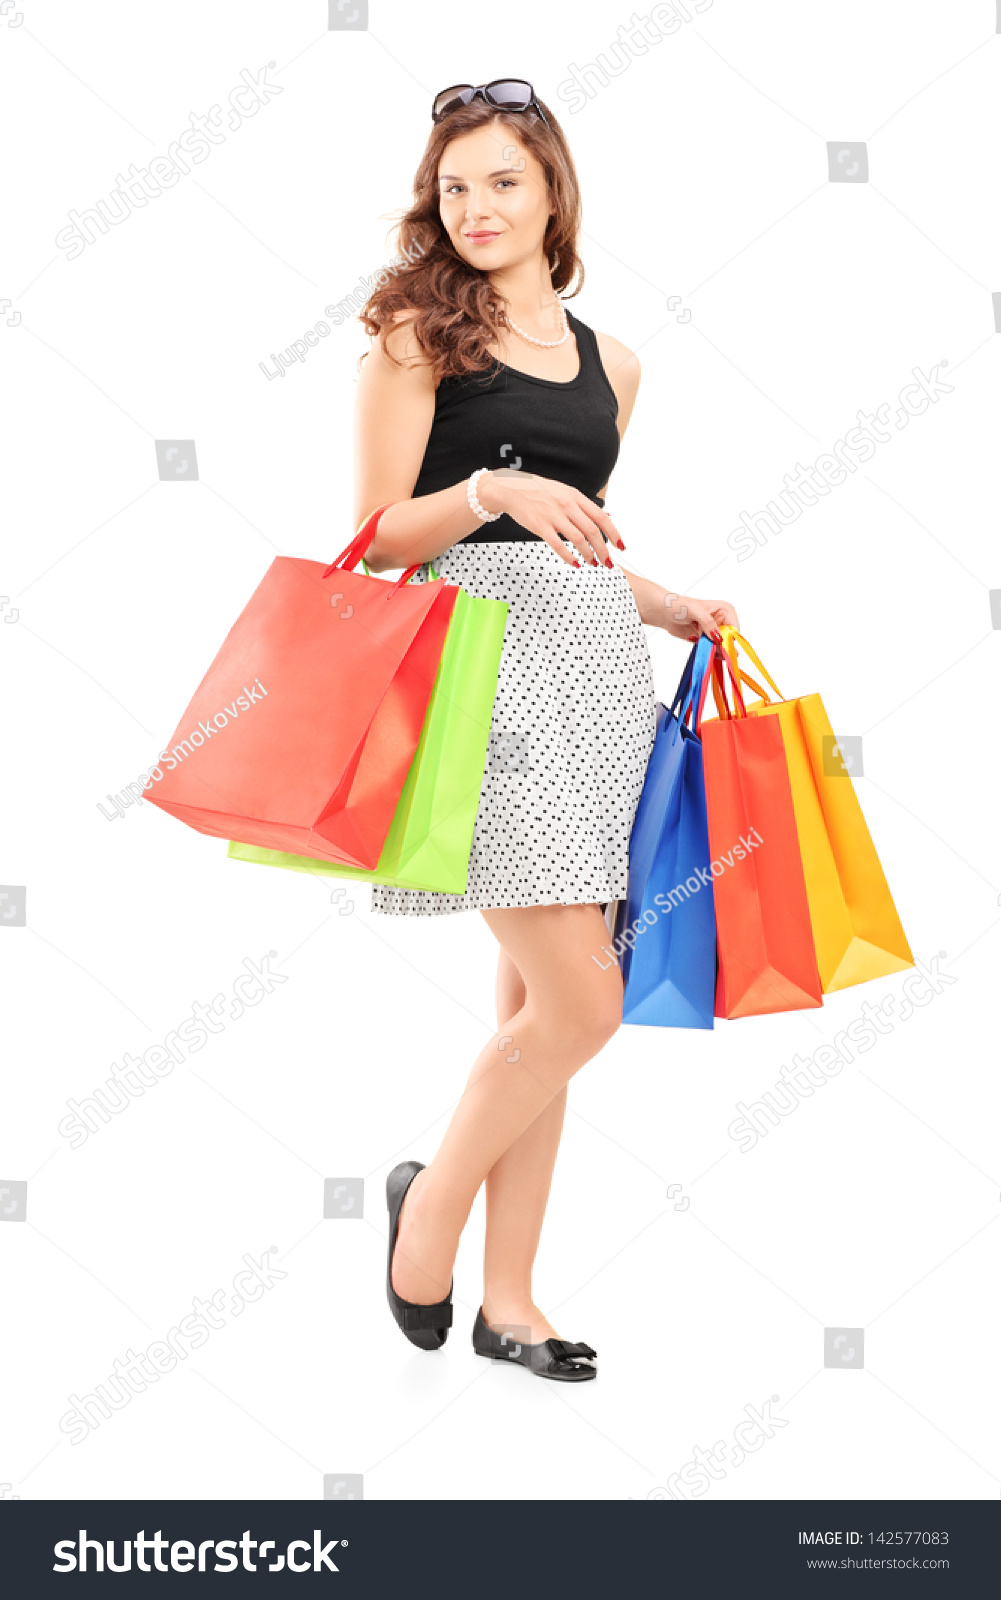 Full length portrait of a beautiful young woman posing with shopping bags isolated on white